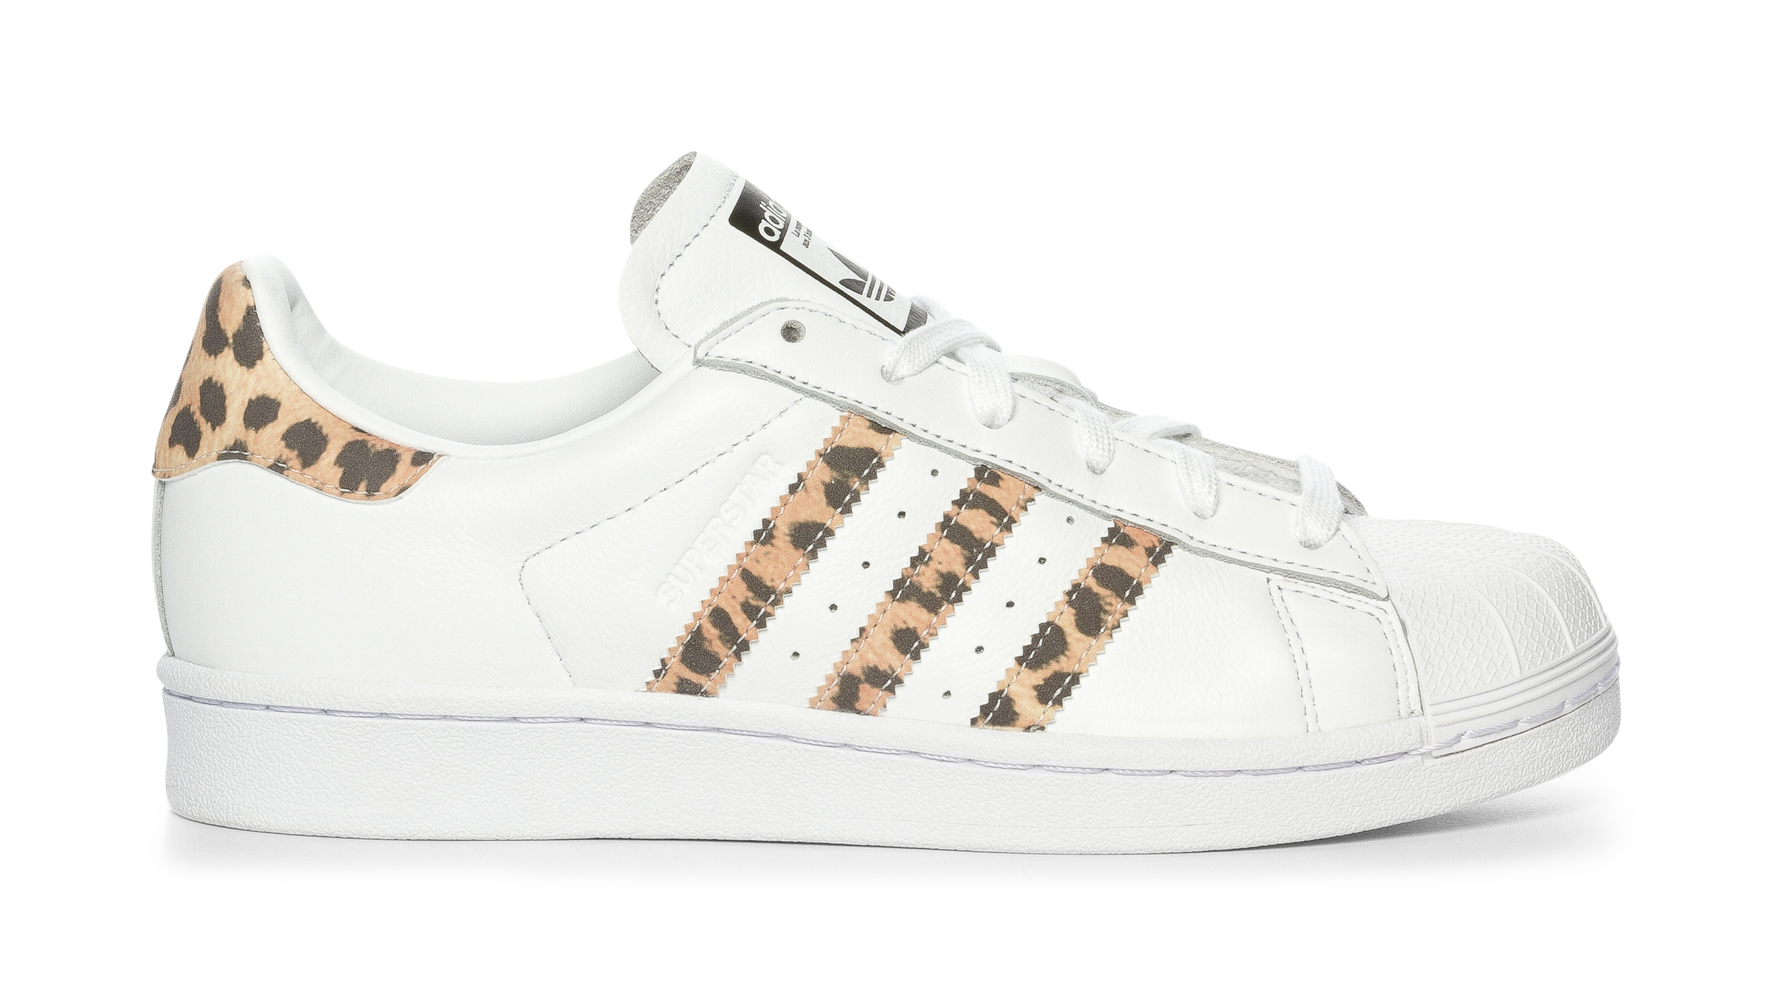 premium selection da1af 20ee0 ADIDAS Superstar Vit - 294346